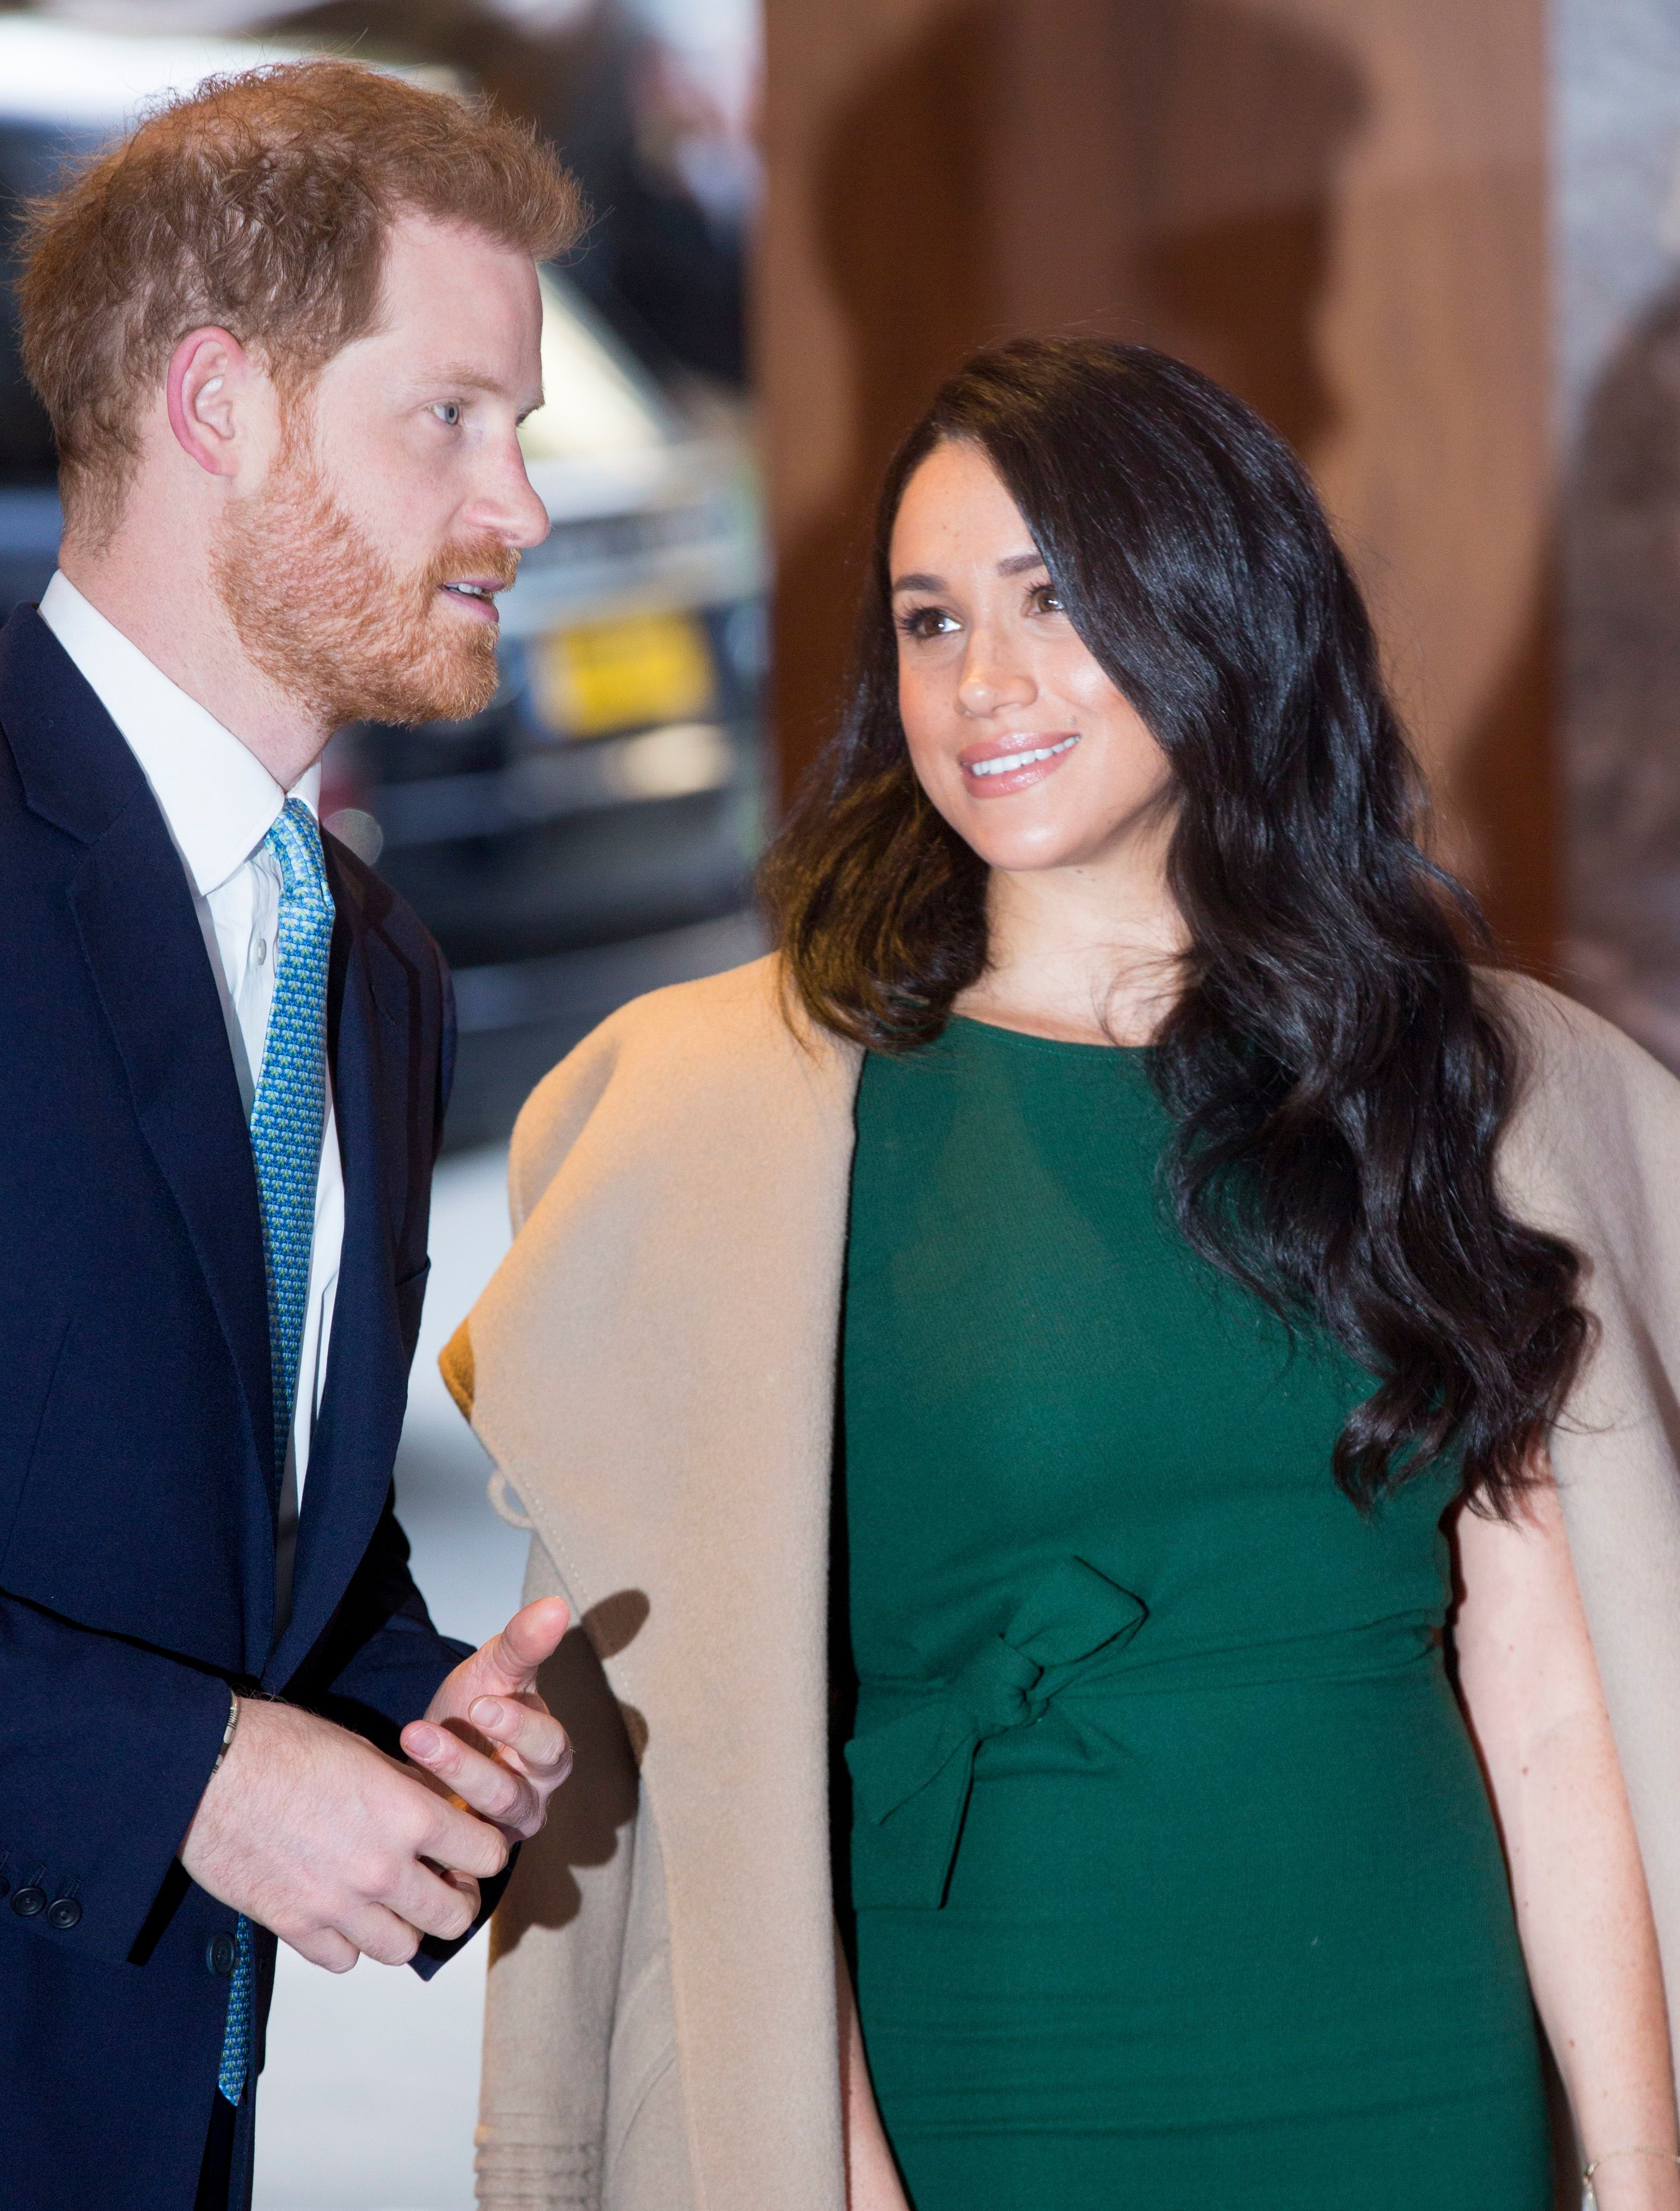 Prince Harry Is 'Planning Lots of Romantic Surprises' For Duchess Meghan During Their Break